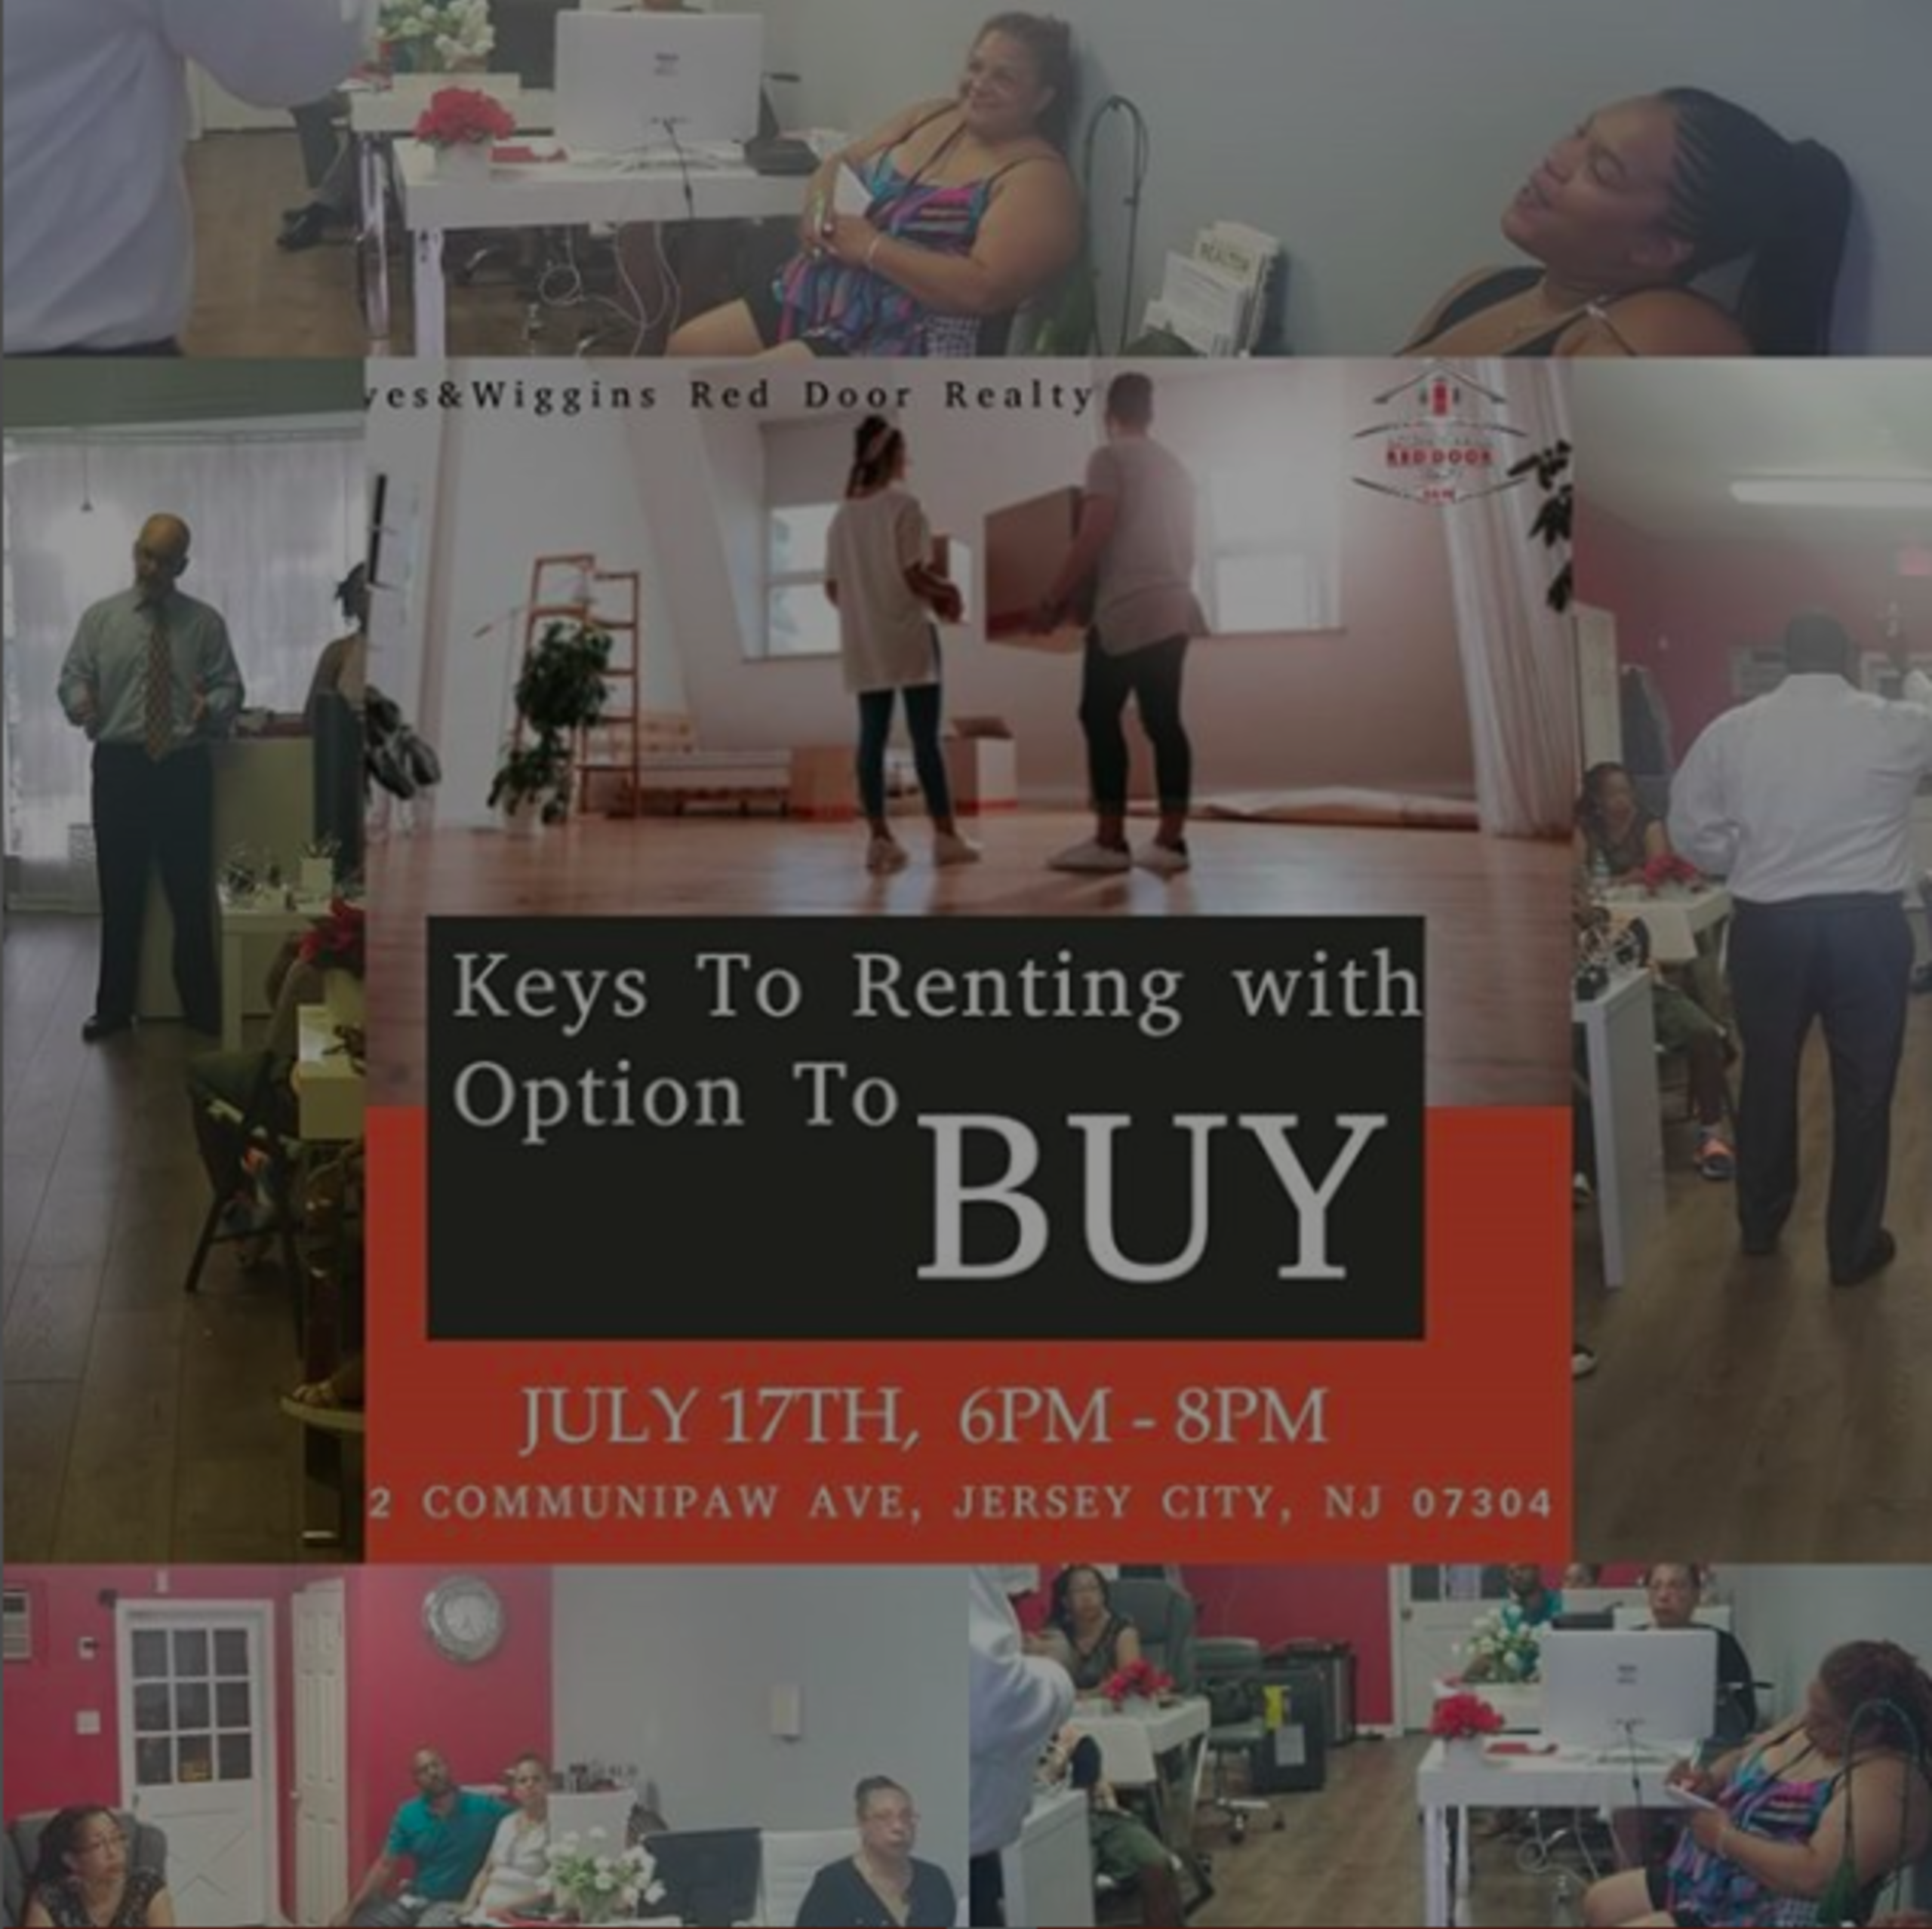 Keys To Renting With Option To Buy Workshop